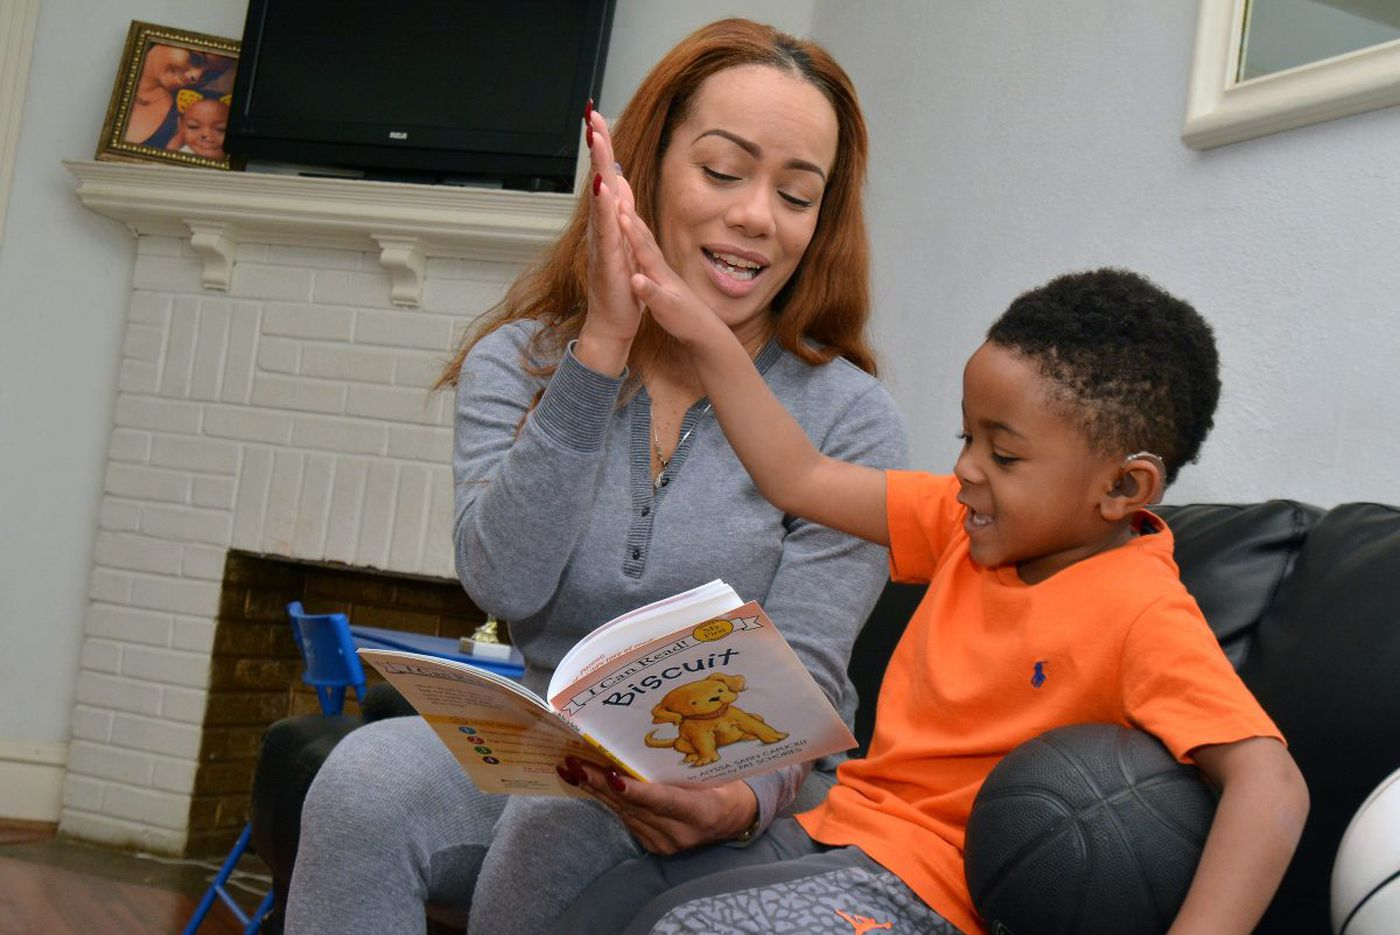 Philly puts out 'urgent' call - 300 families needed for fostering